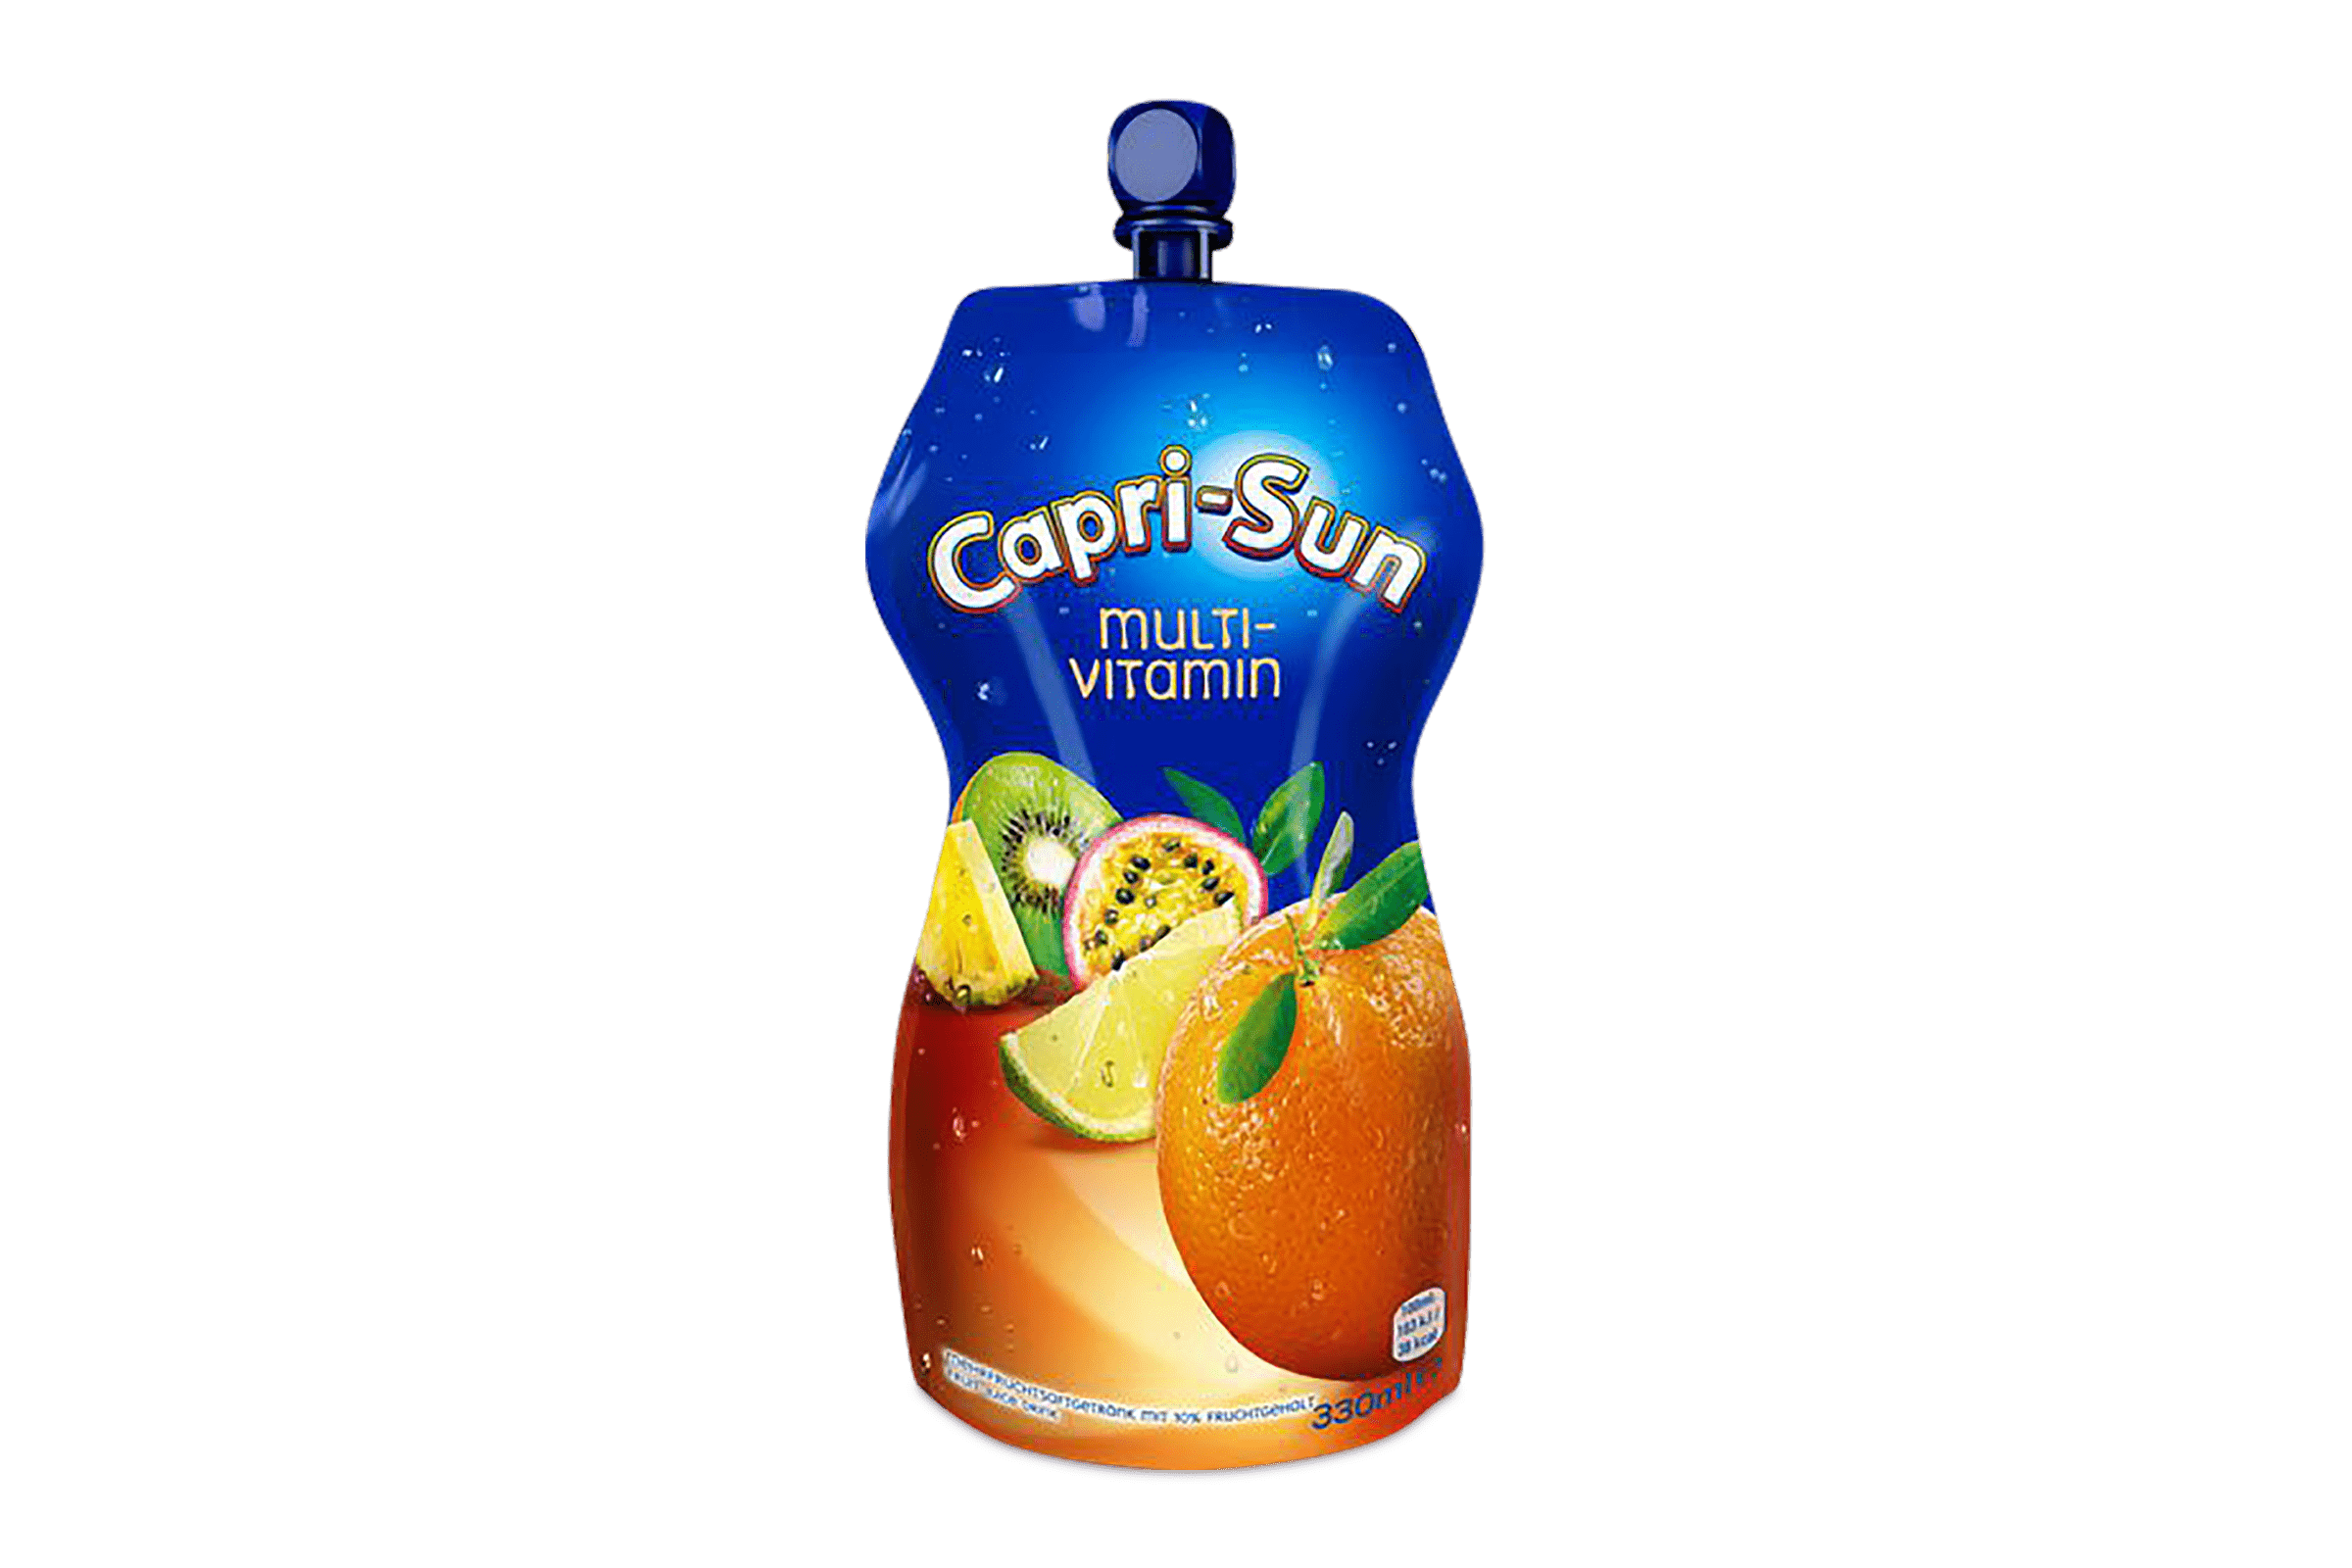 CapriSun Multivitamin 0.33 l 1